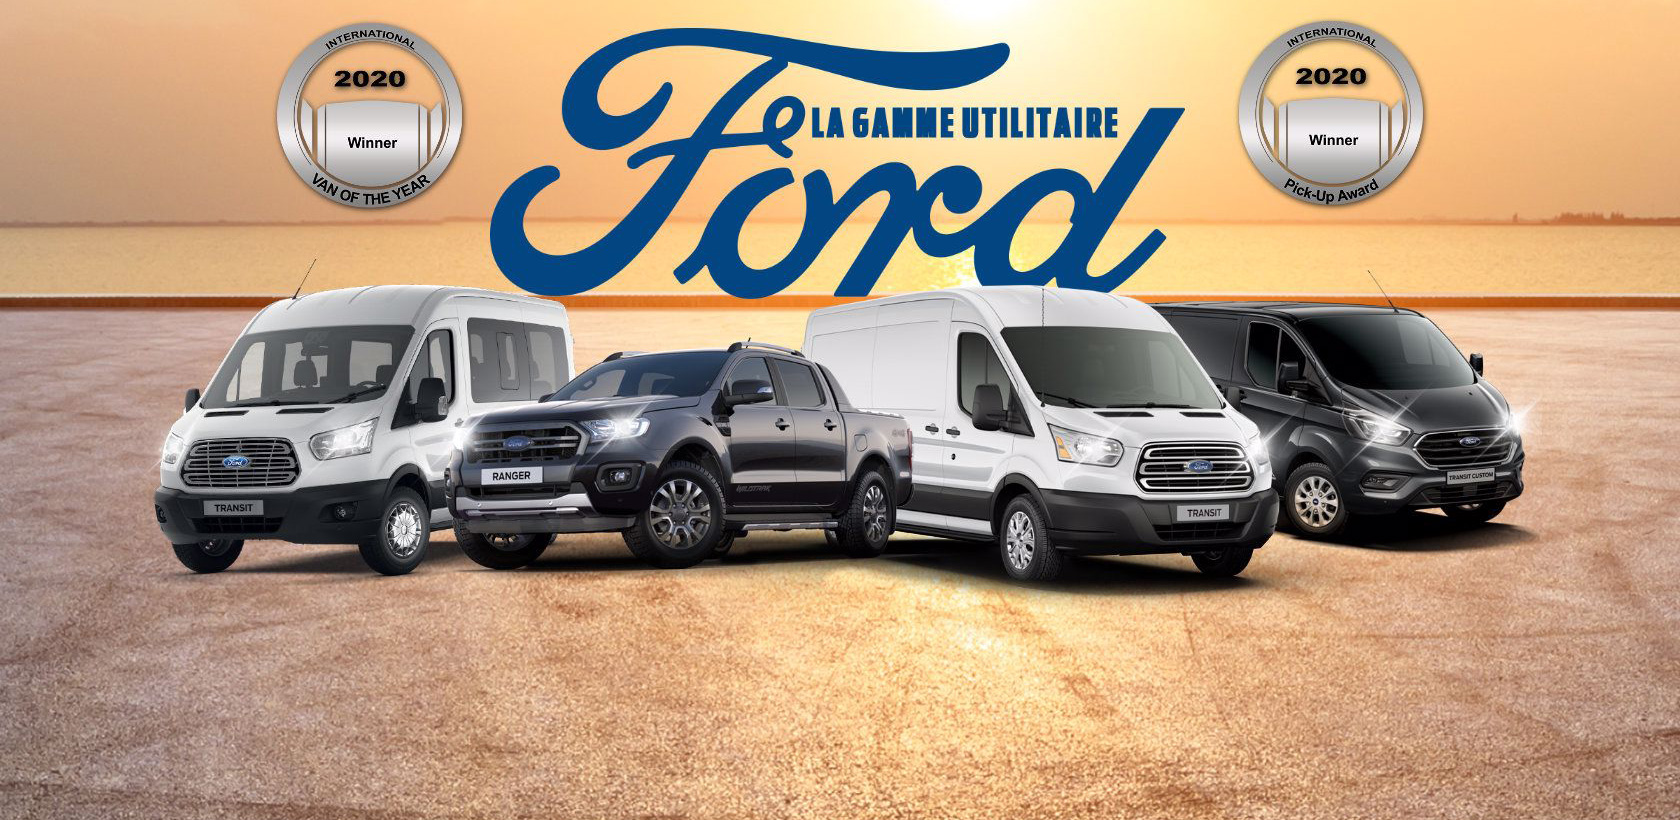 Gamme utilitaire Ford